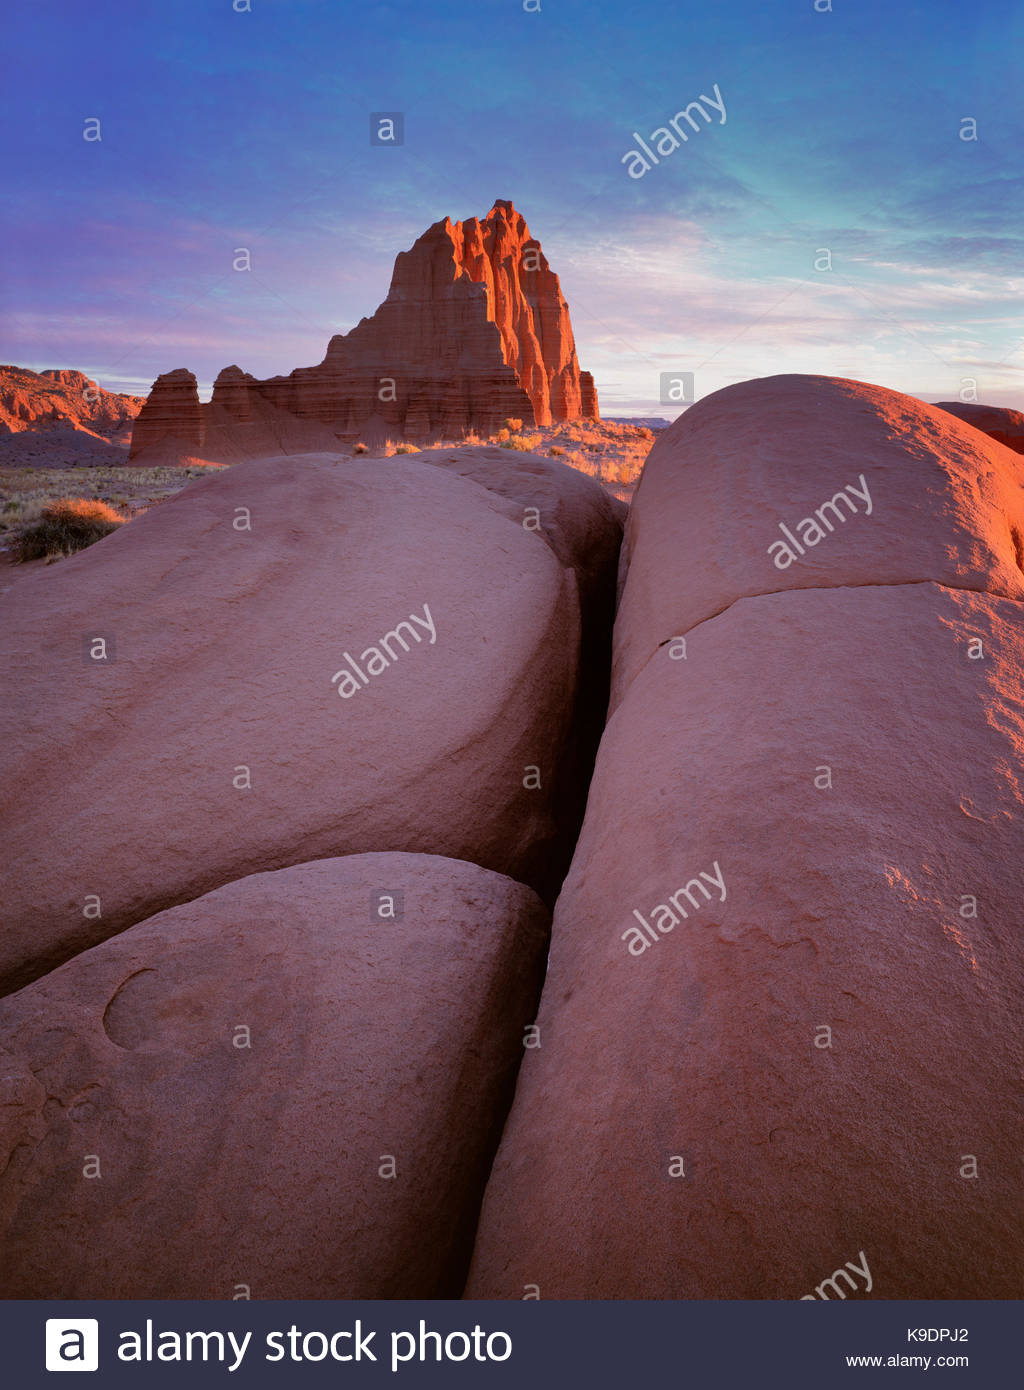 Temple of the Sun at Sunrise, Cathedral Valley, Capitol Reef National Park, Utah - Stock Image